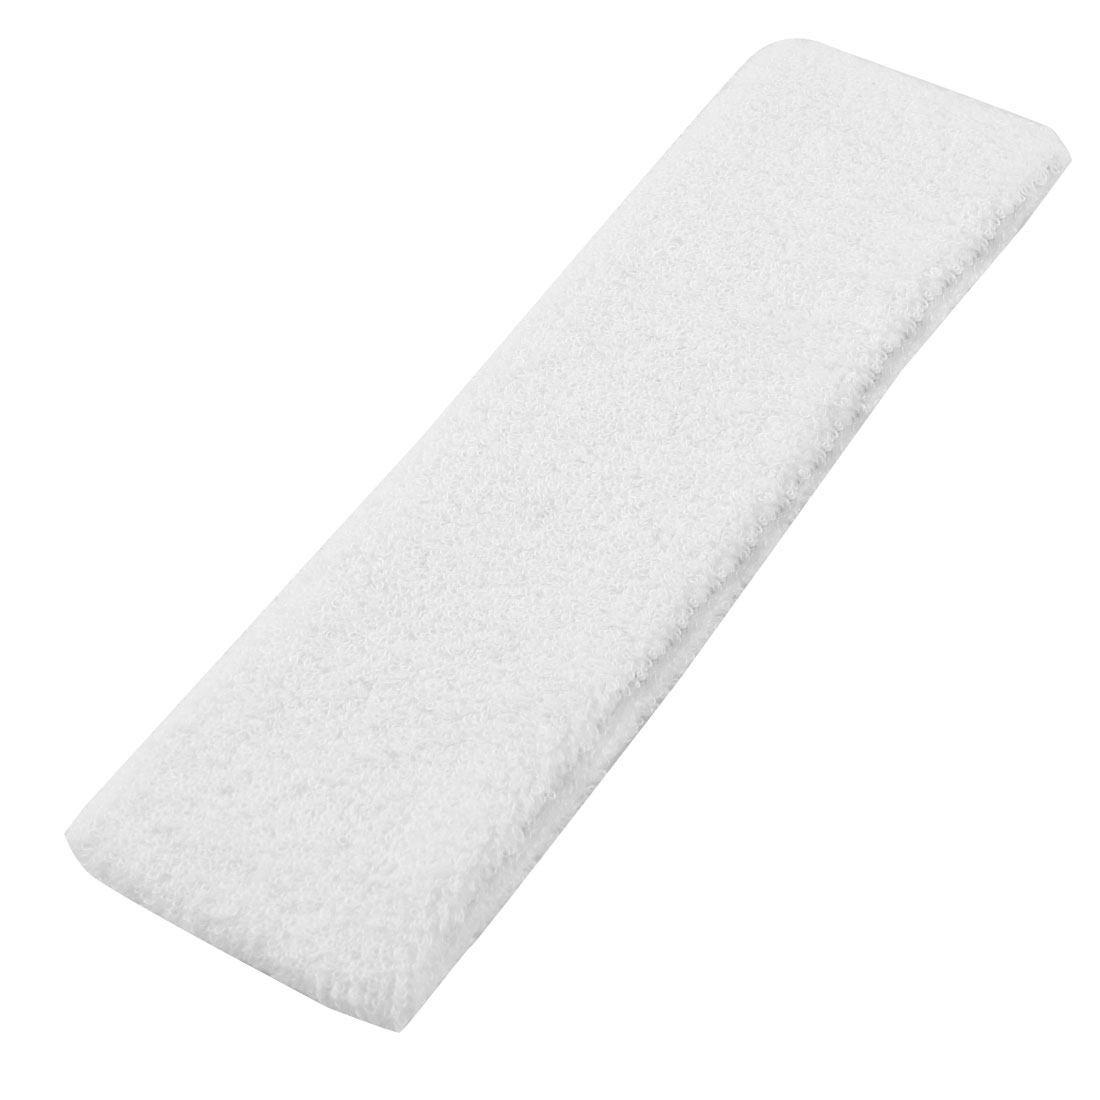 2 Pcs White Terrycloth Headband for Holding Fringe Bang Hair